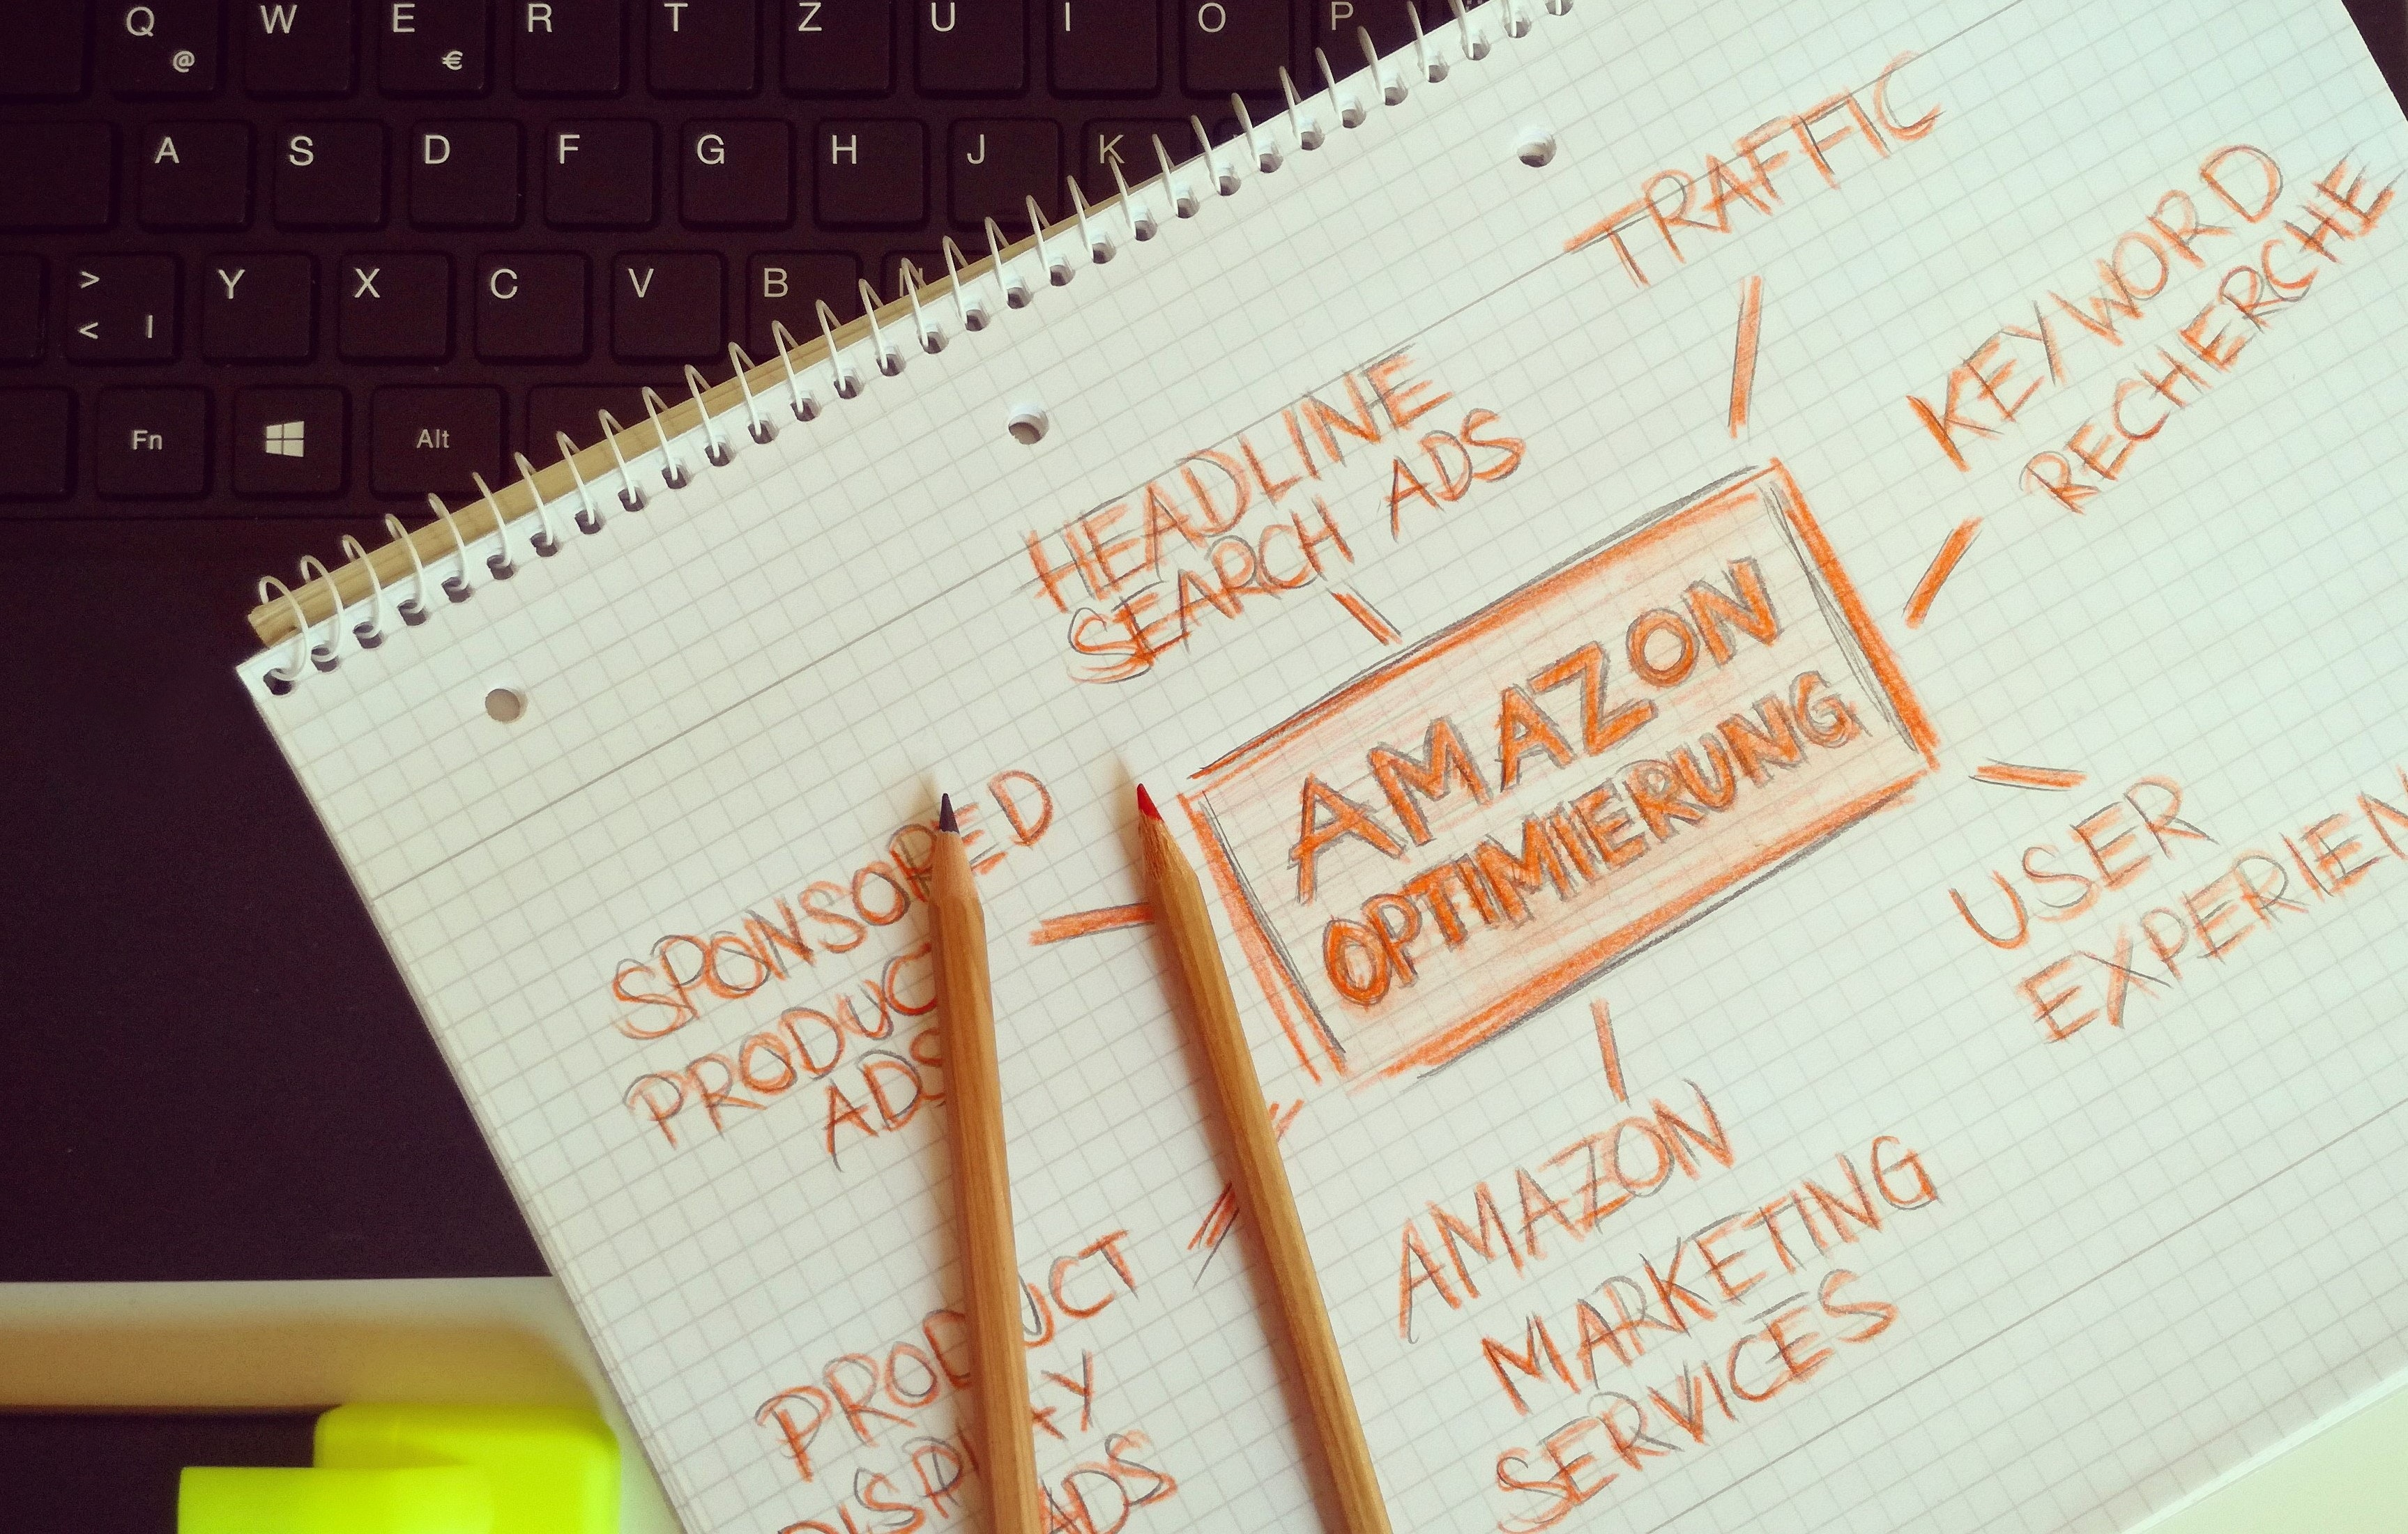 How to launch your product on amazon using PPC